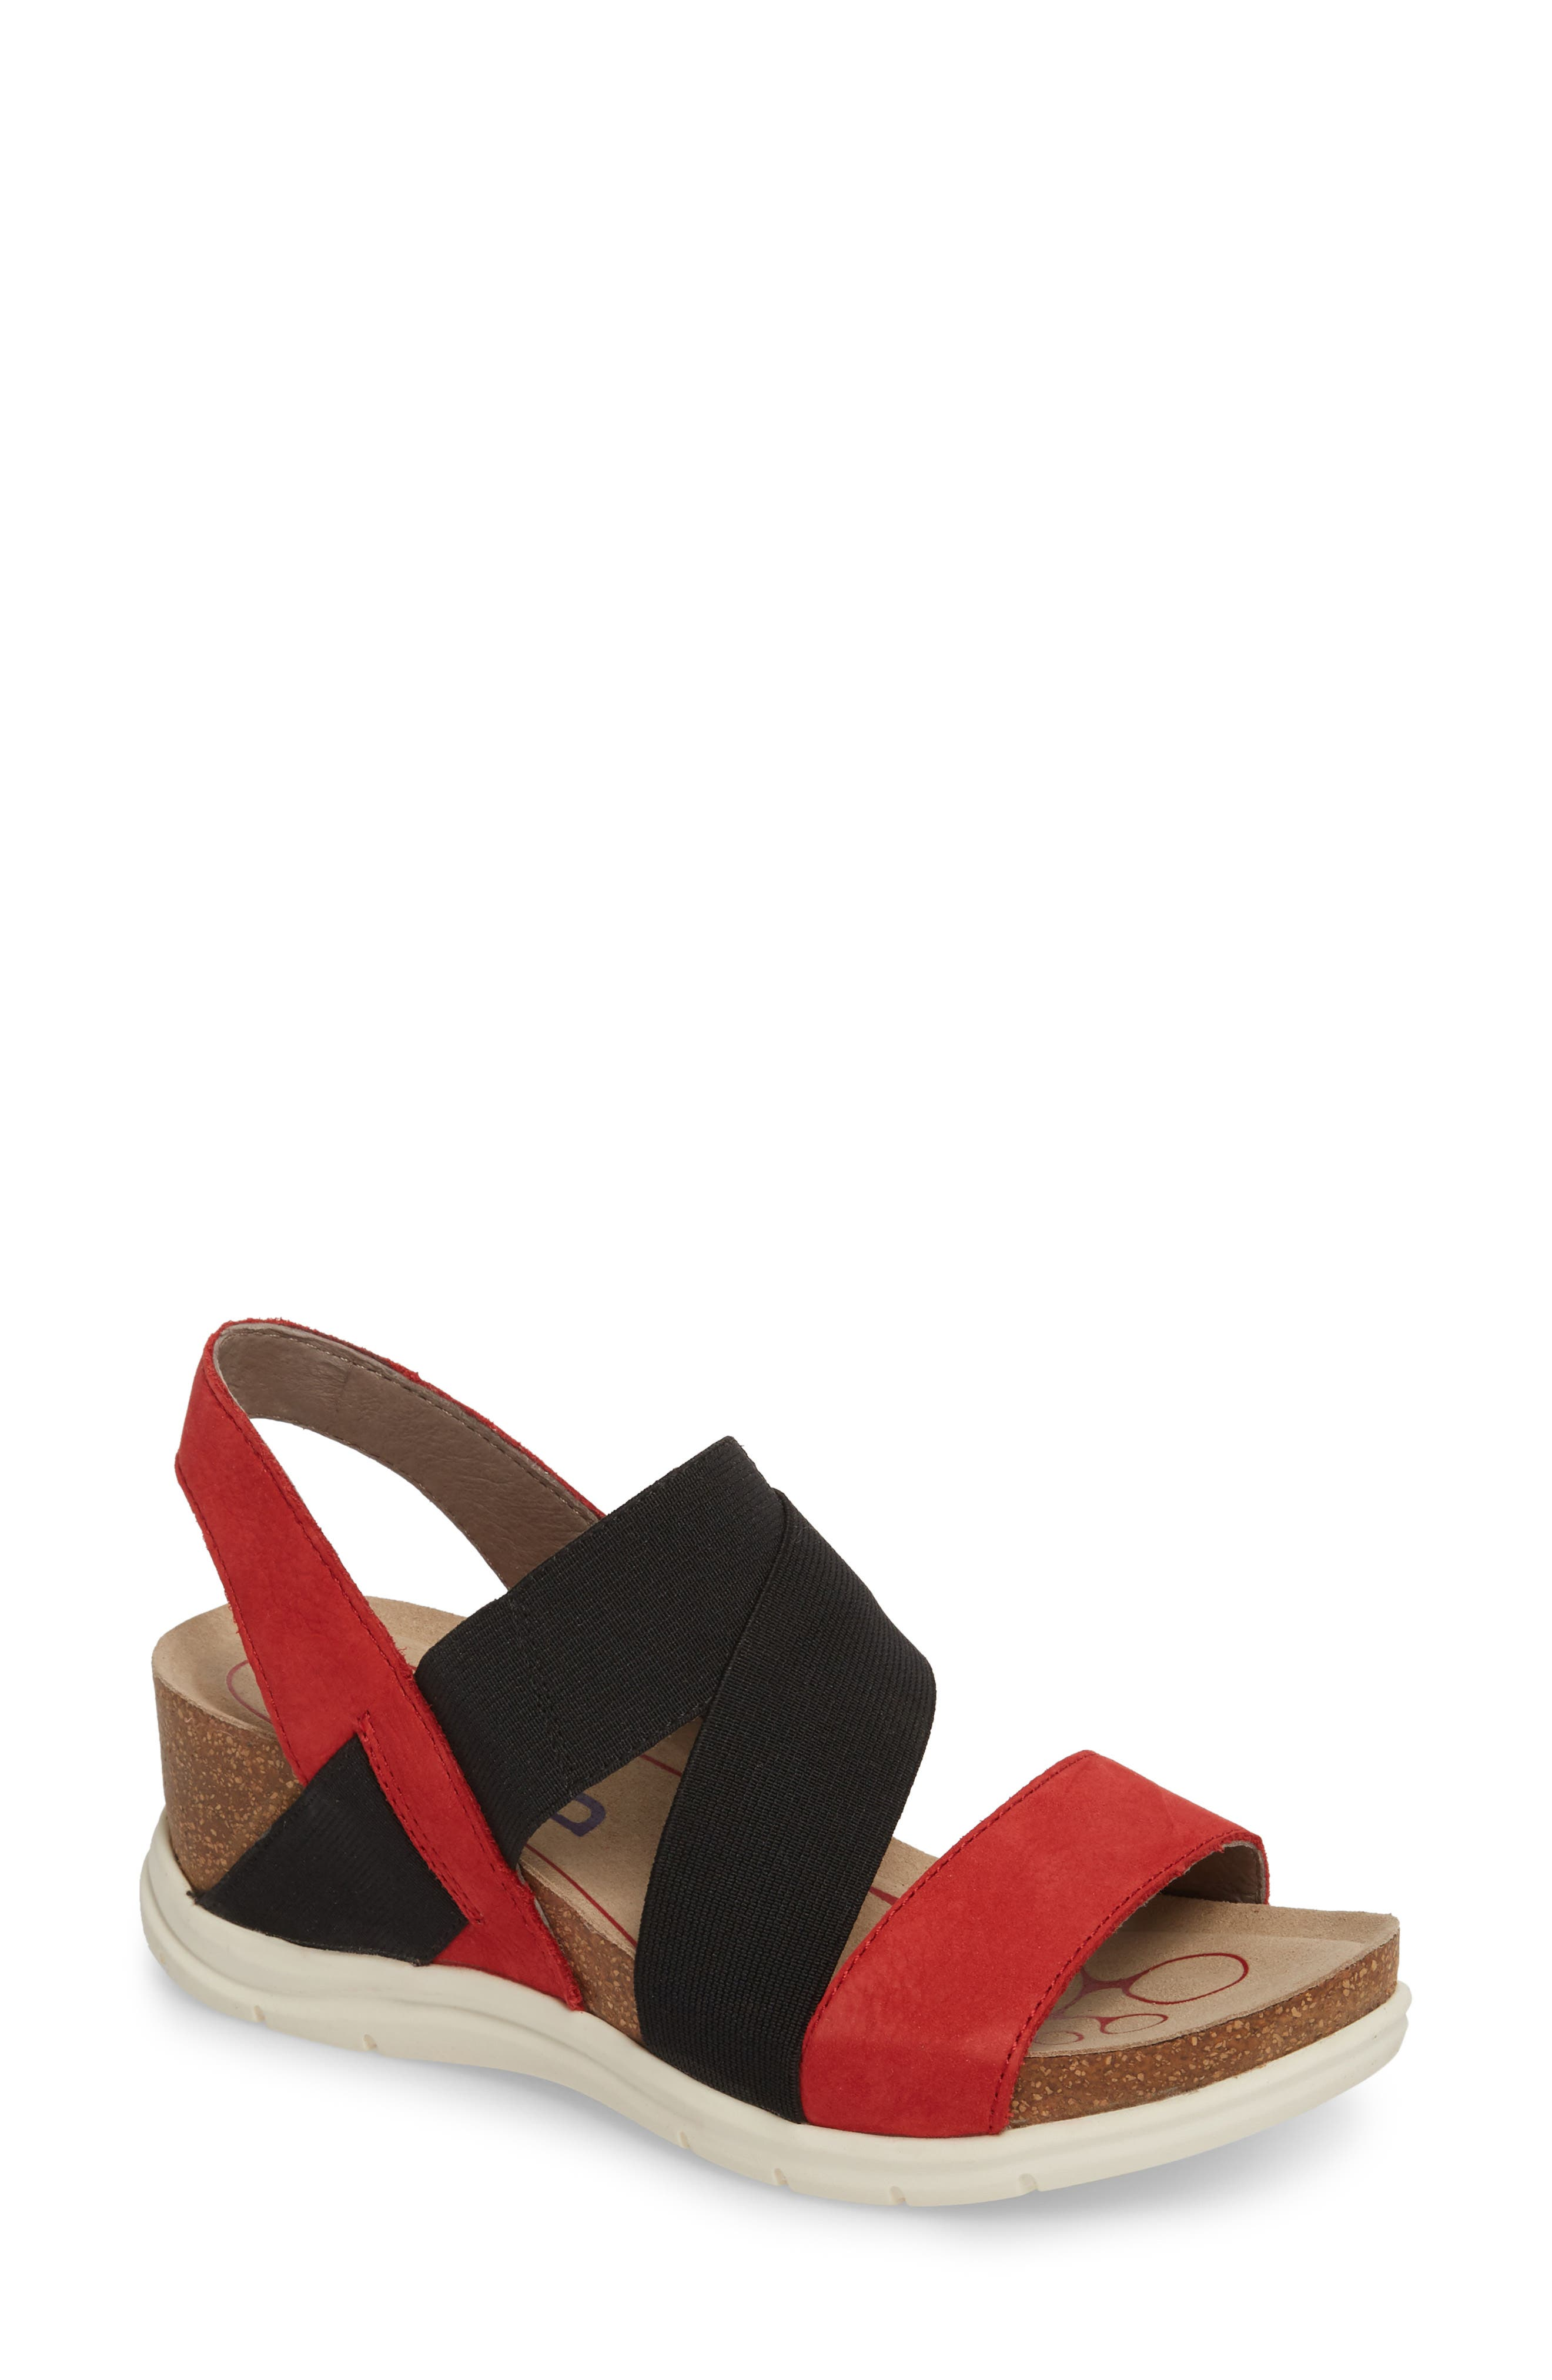 Paisley Wedge Sandal,                         Main,                         color, Coral Leather